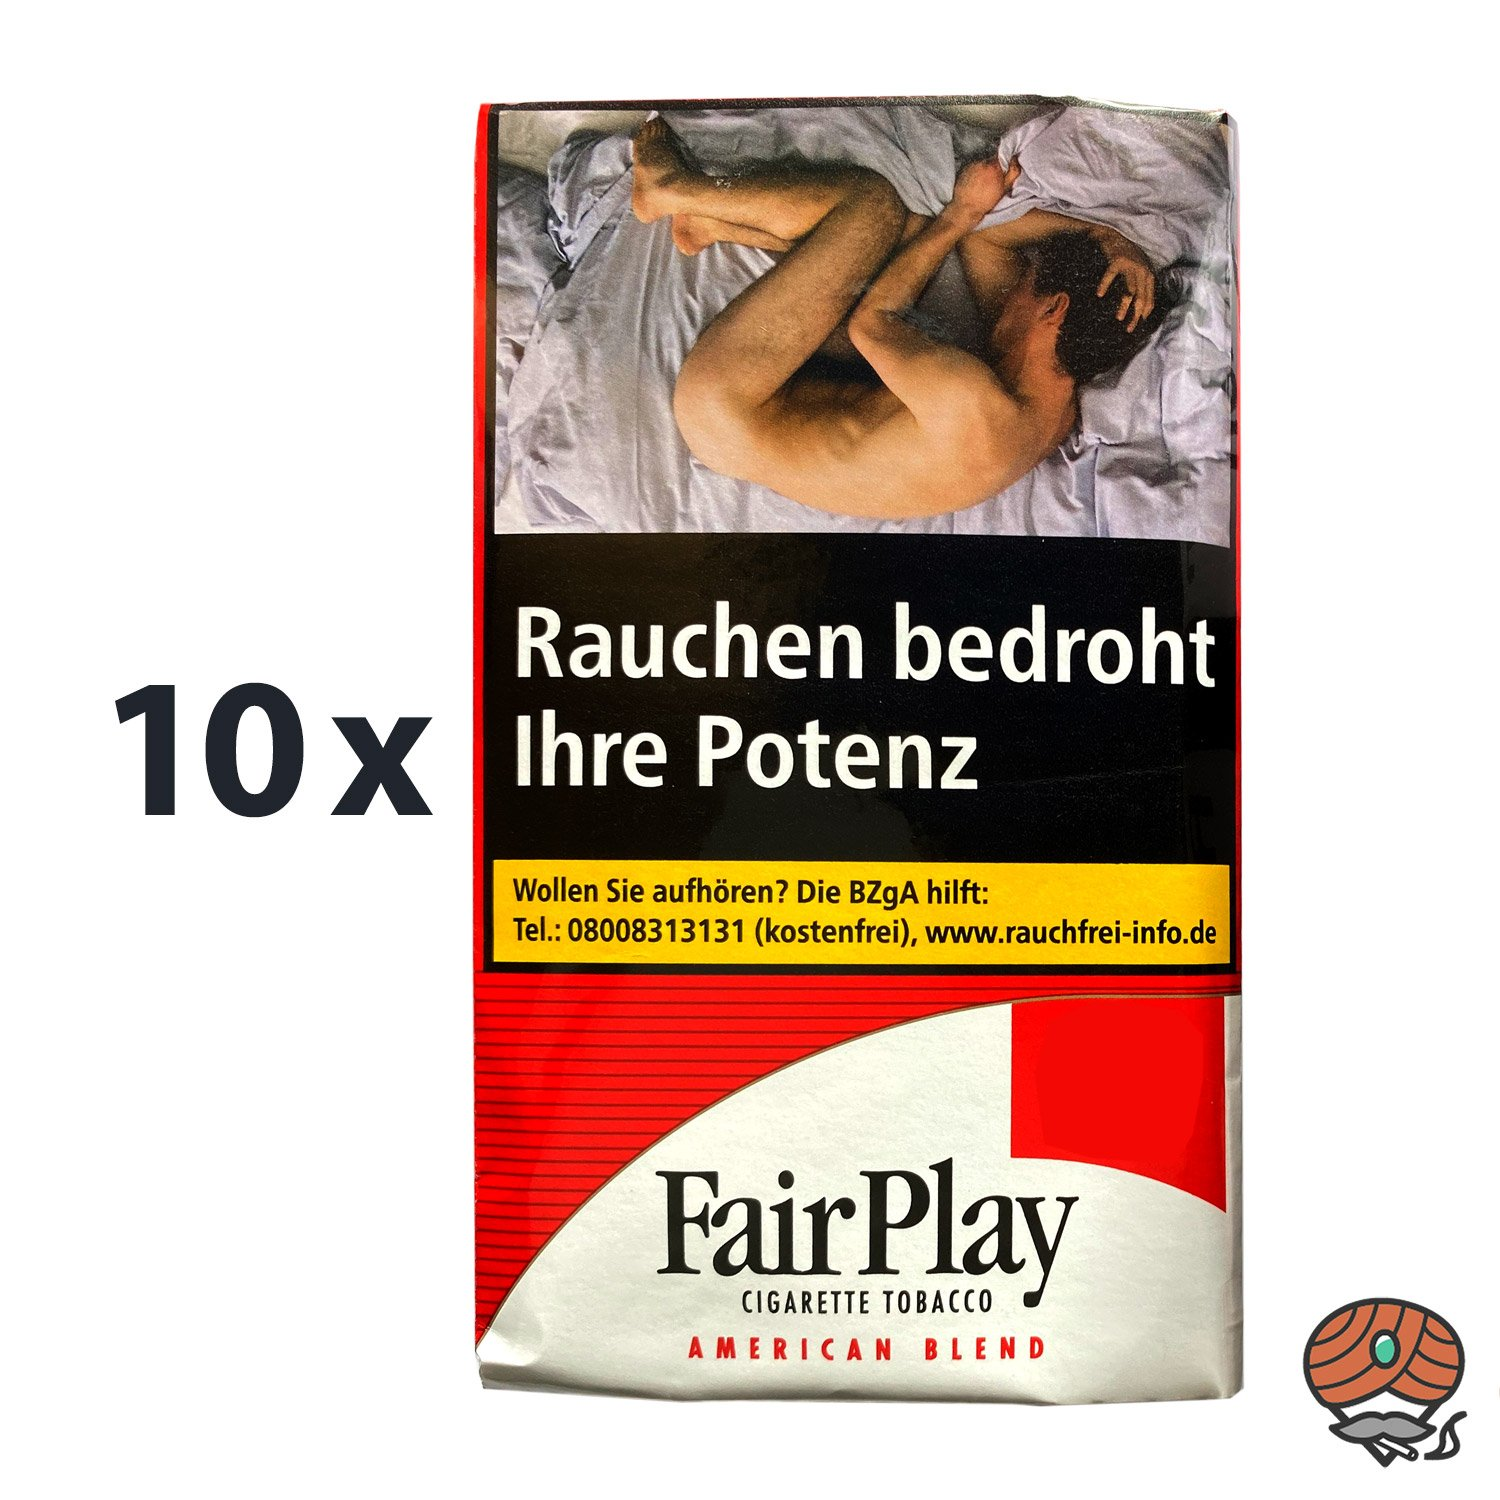 10 x FairPlay American Blend Tabak / Drehtabak Pouches à 30 g